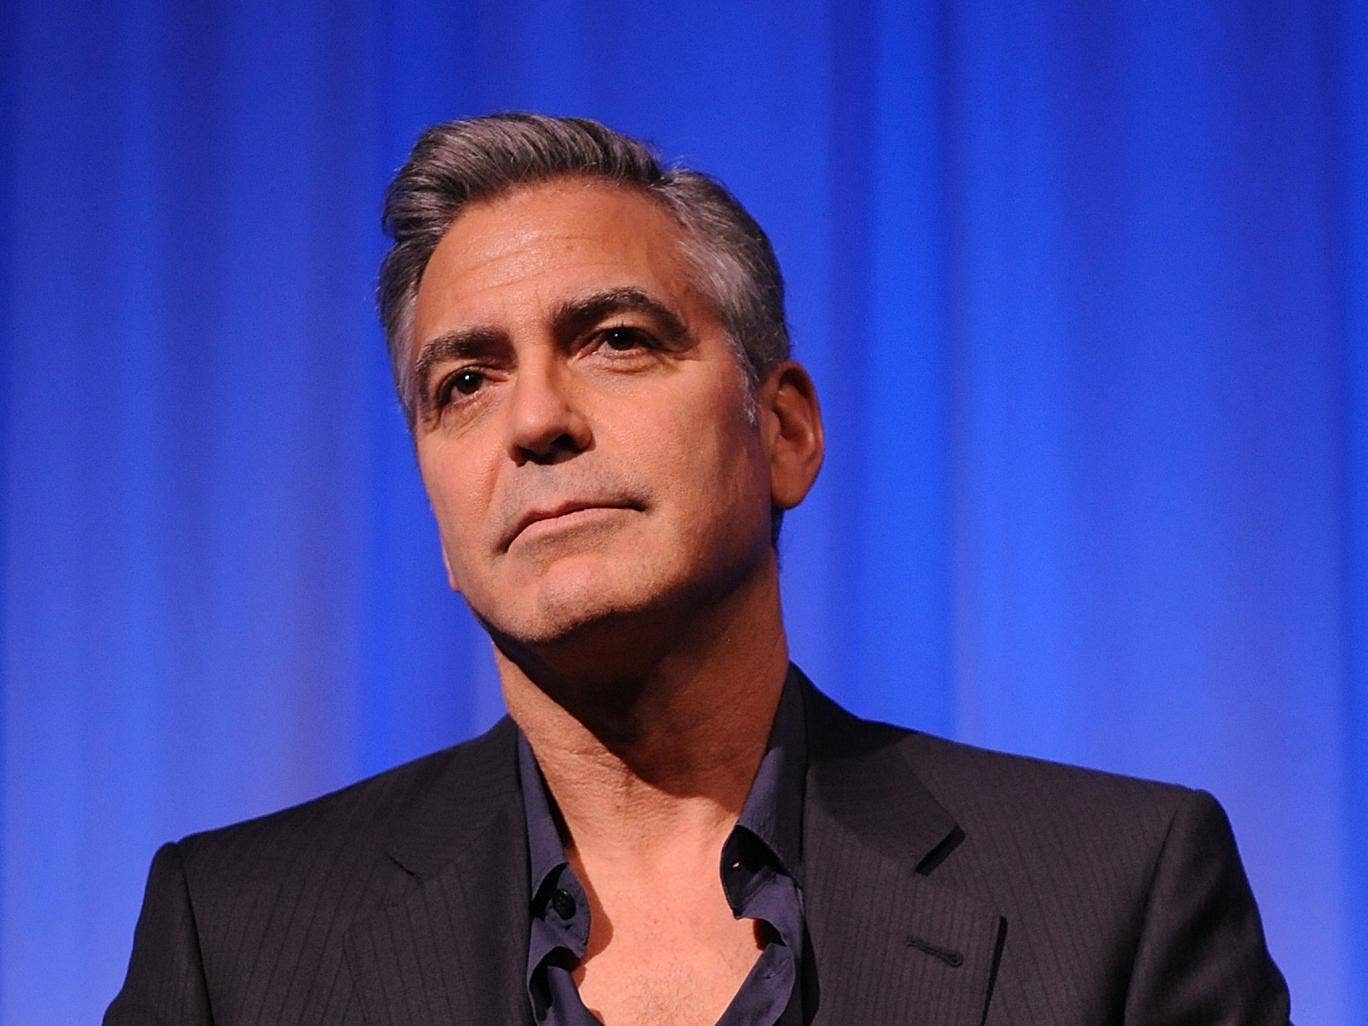 Production on George Clooney's phone hacking film is expected to begin in 2015